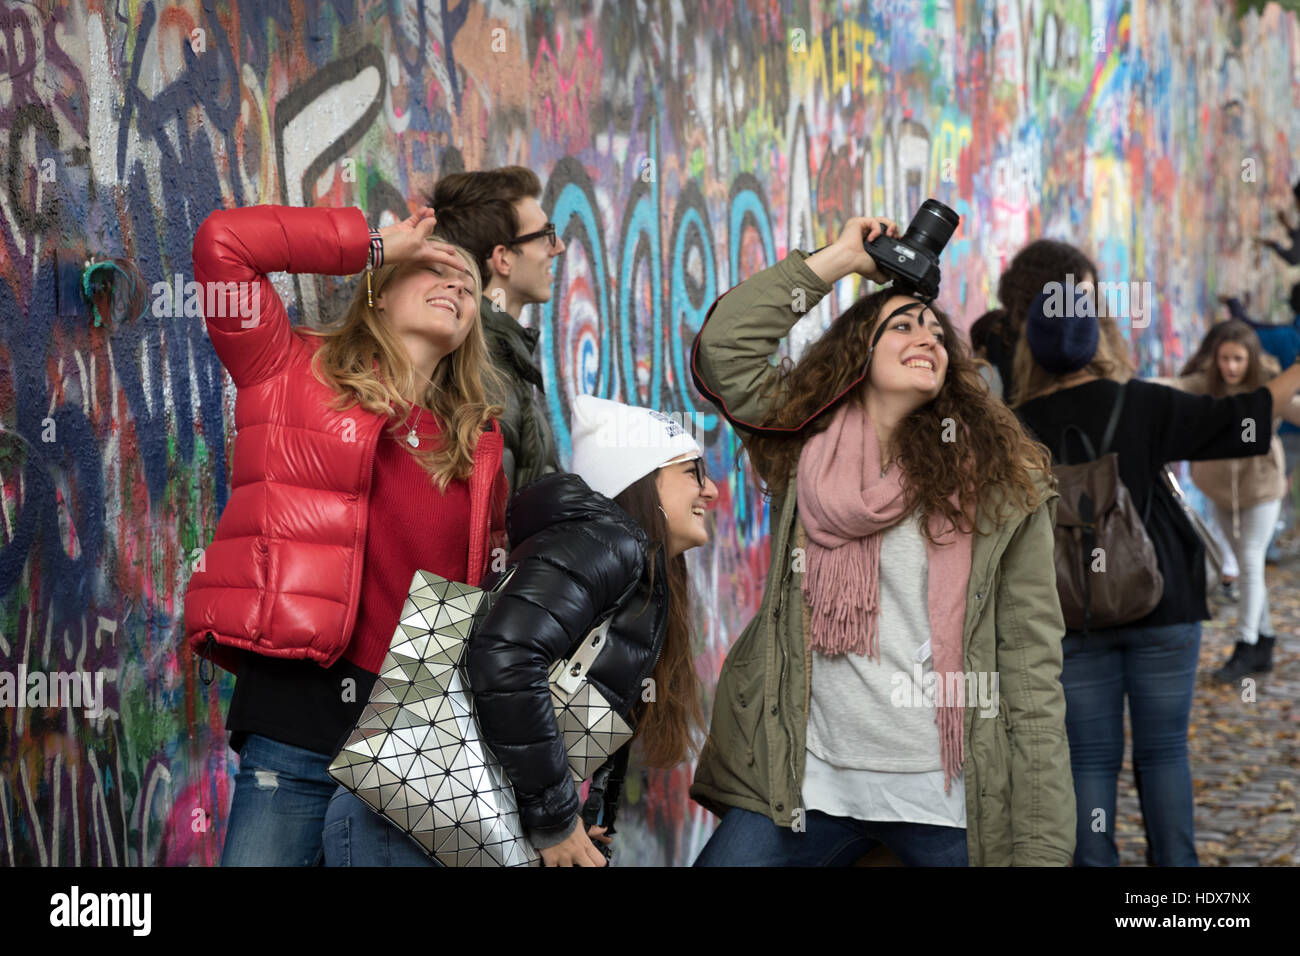 Young visitors pose in front of the John Lennon Wall, in Malá Strana, Prague - Stock Image